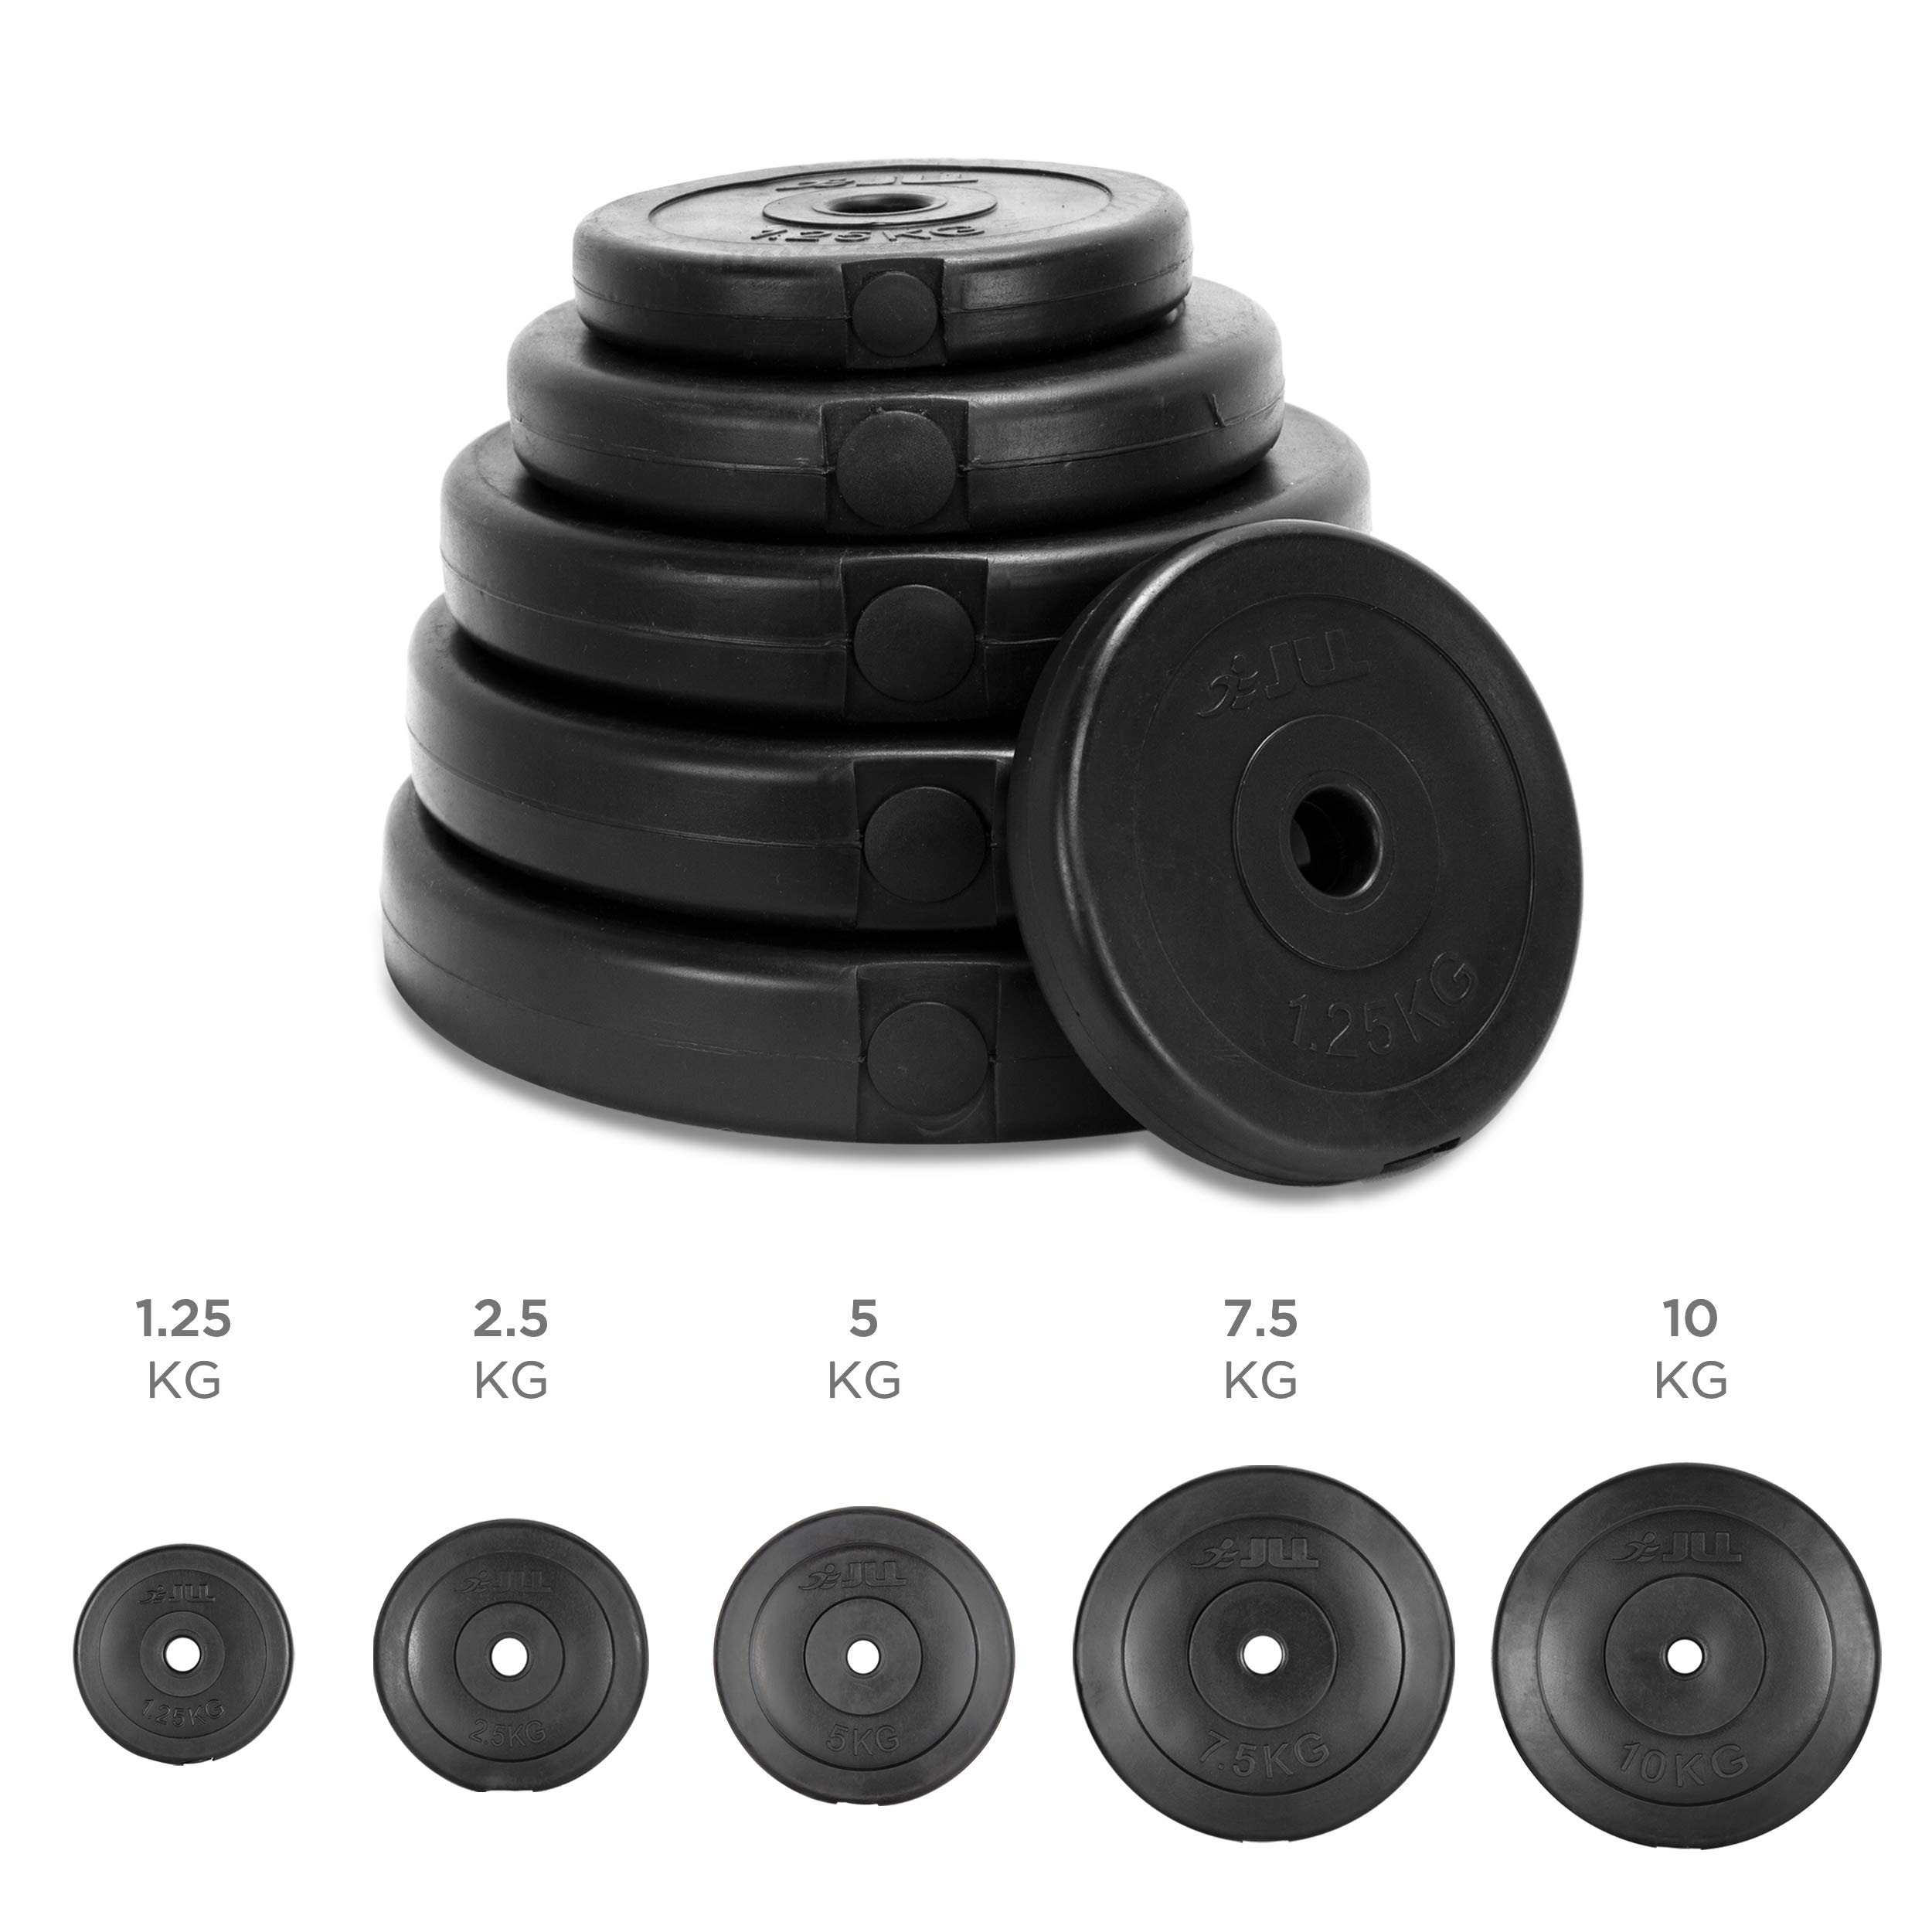 Jll Vinyl Weight Plates 1 25kg 10kg Plates In Sets Of 5kg 10kg 15kg 20kg And 30kg Suitable For 1 Weight Lifting Bars Home Gym Weight Training Fitness Workout Buy Online In Austria